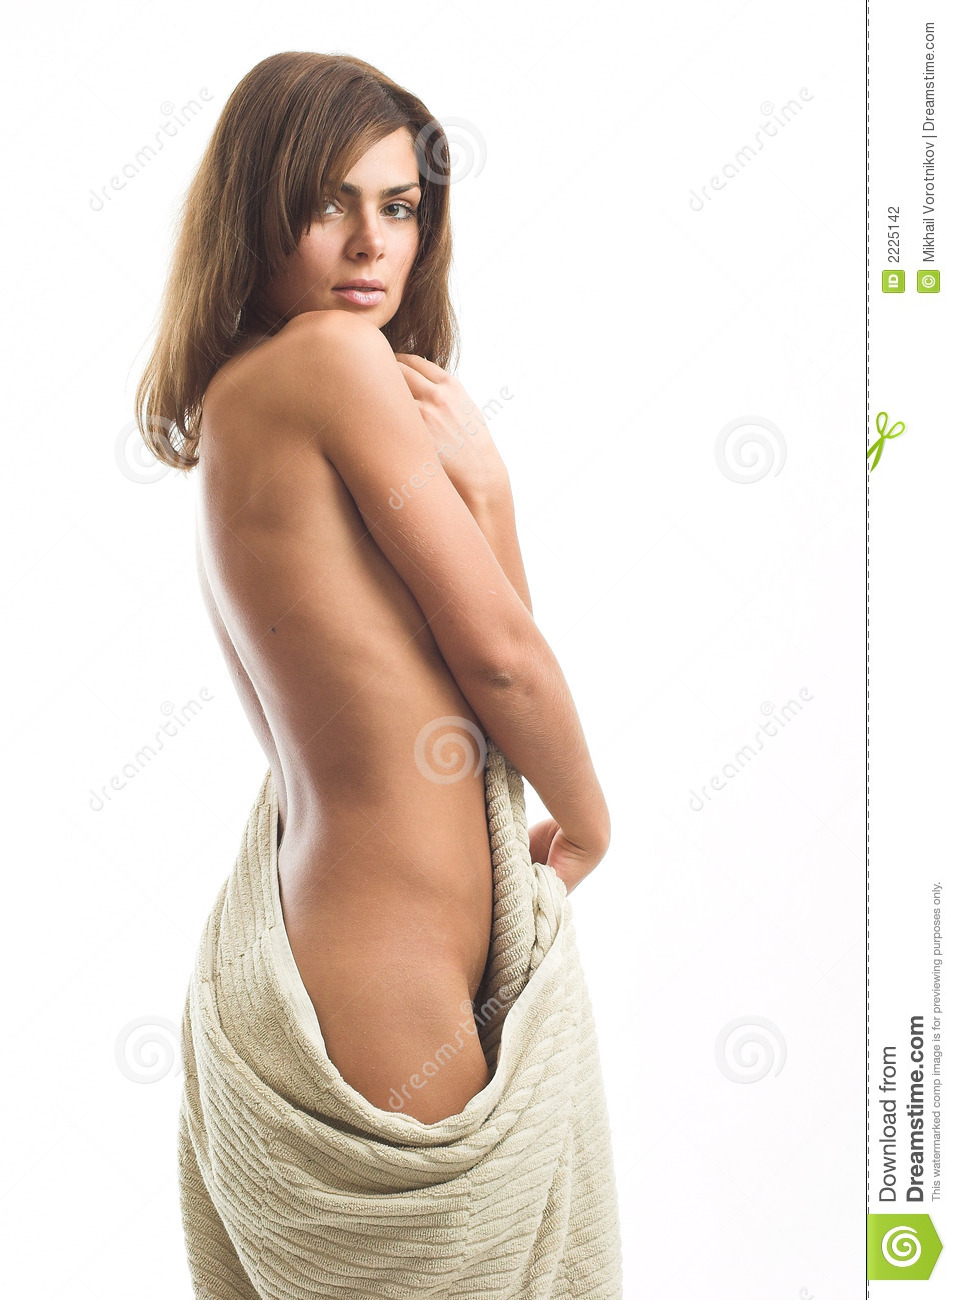 Girl With Towel Stock Photo Image Of Drape, Beautiful - 2225142-8182